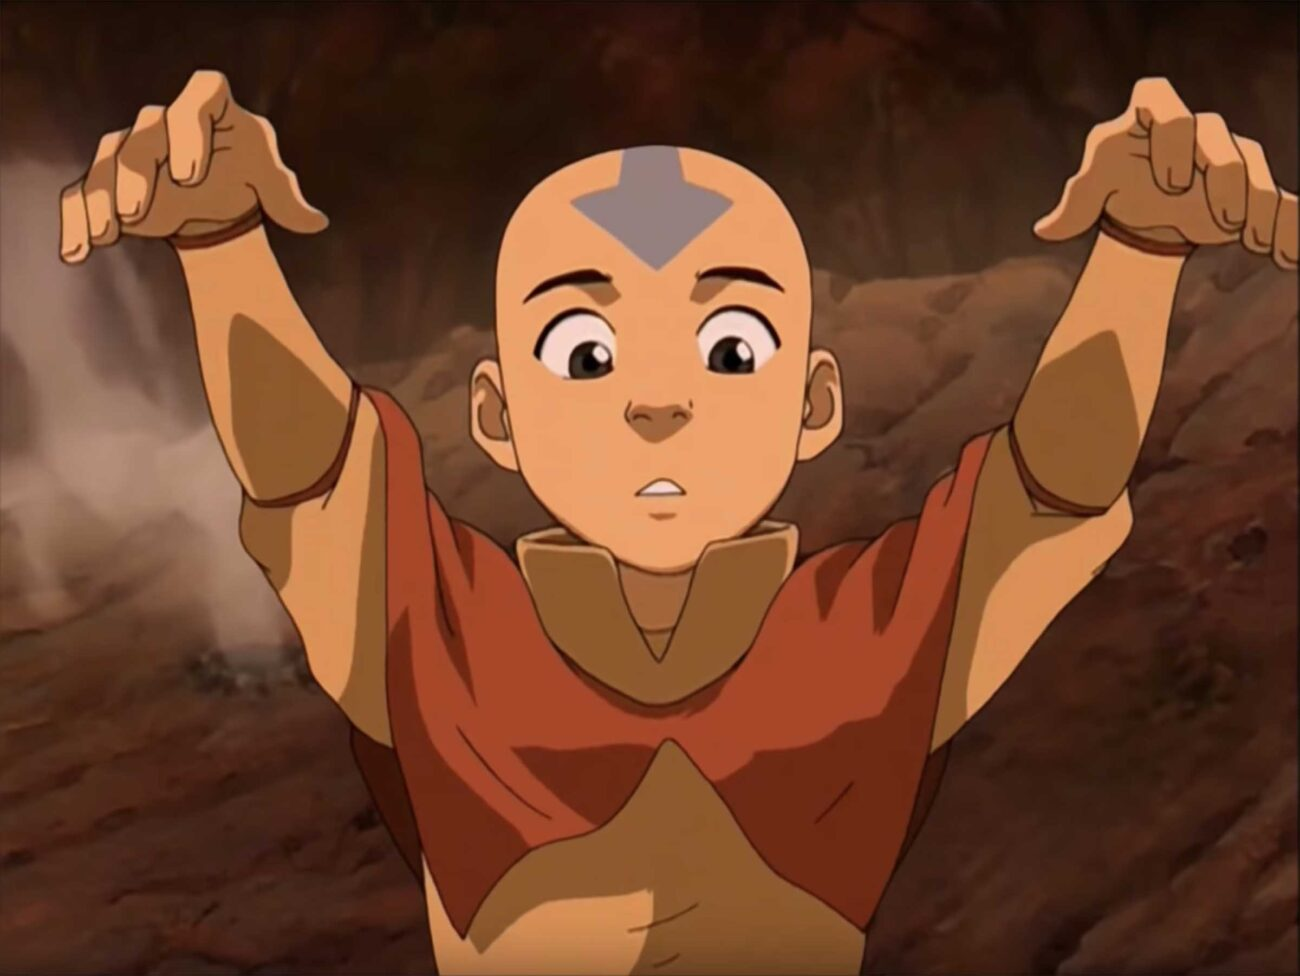 Avatar: The Last Airbender Anime Still